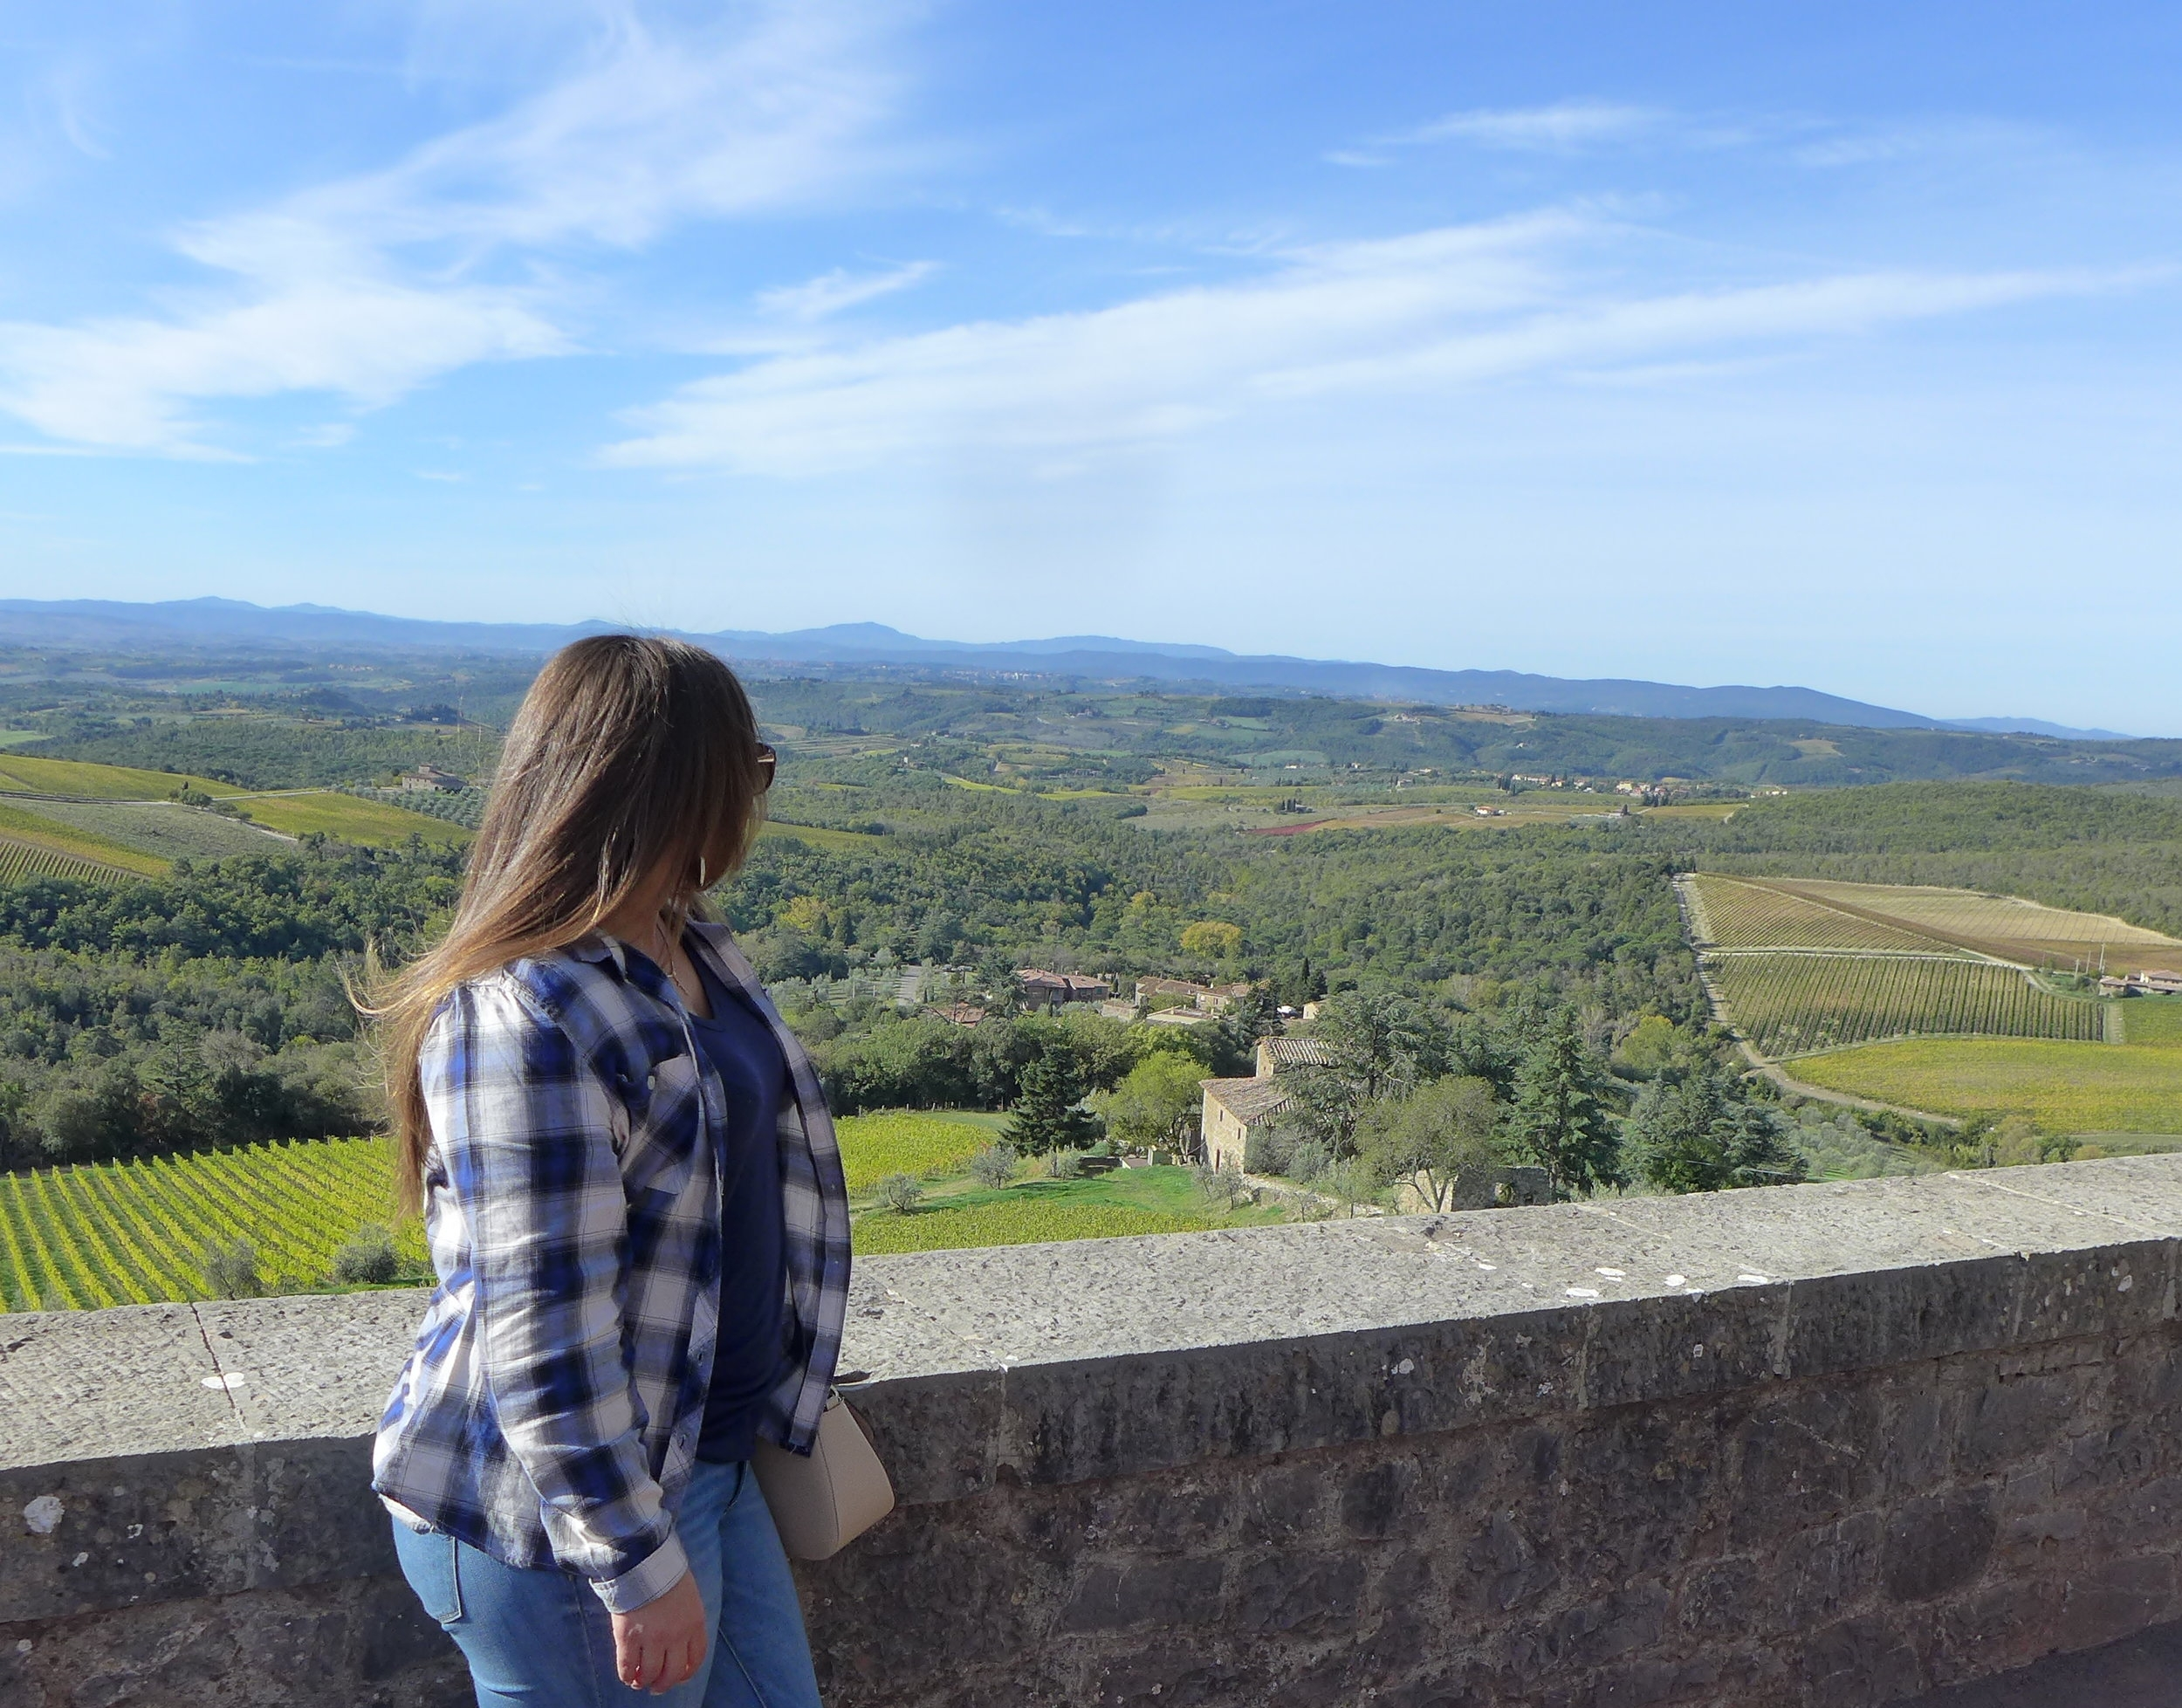 Me in Tuscany, Italy